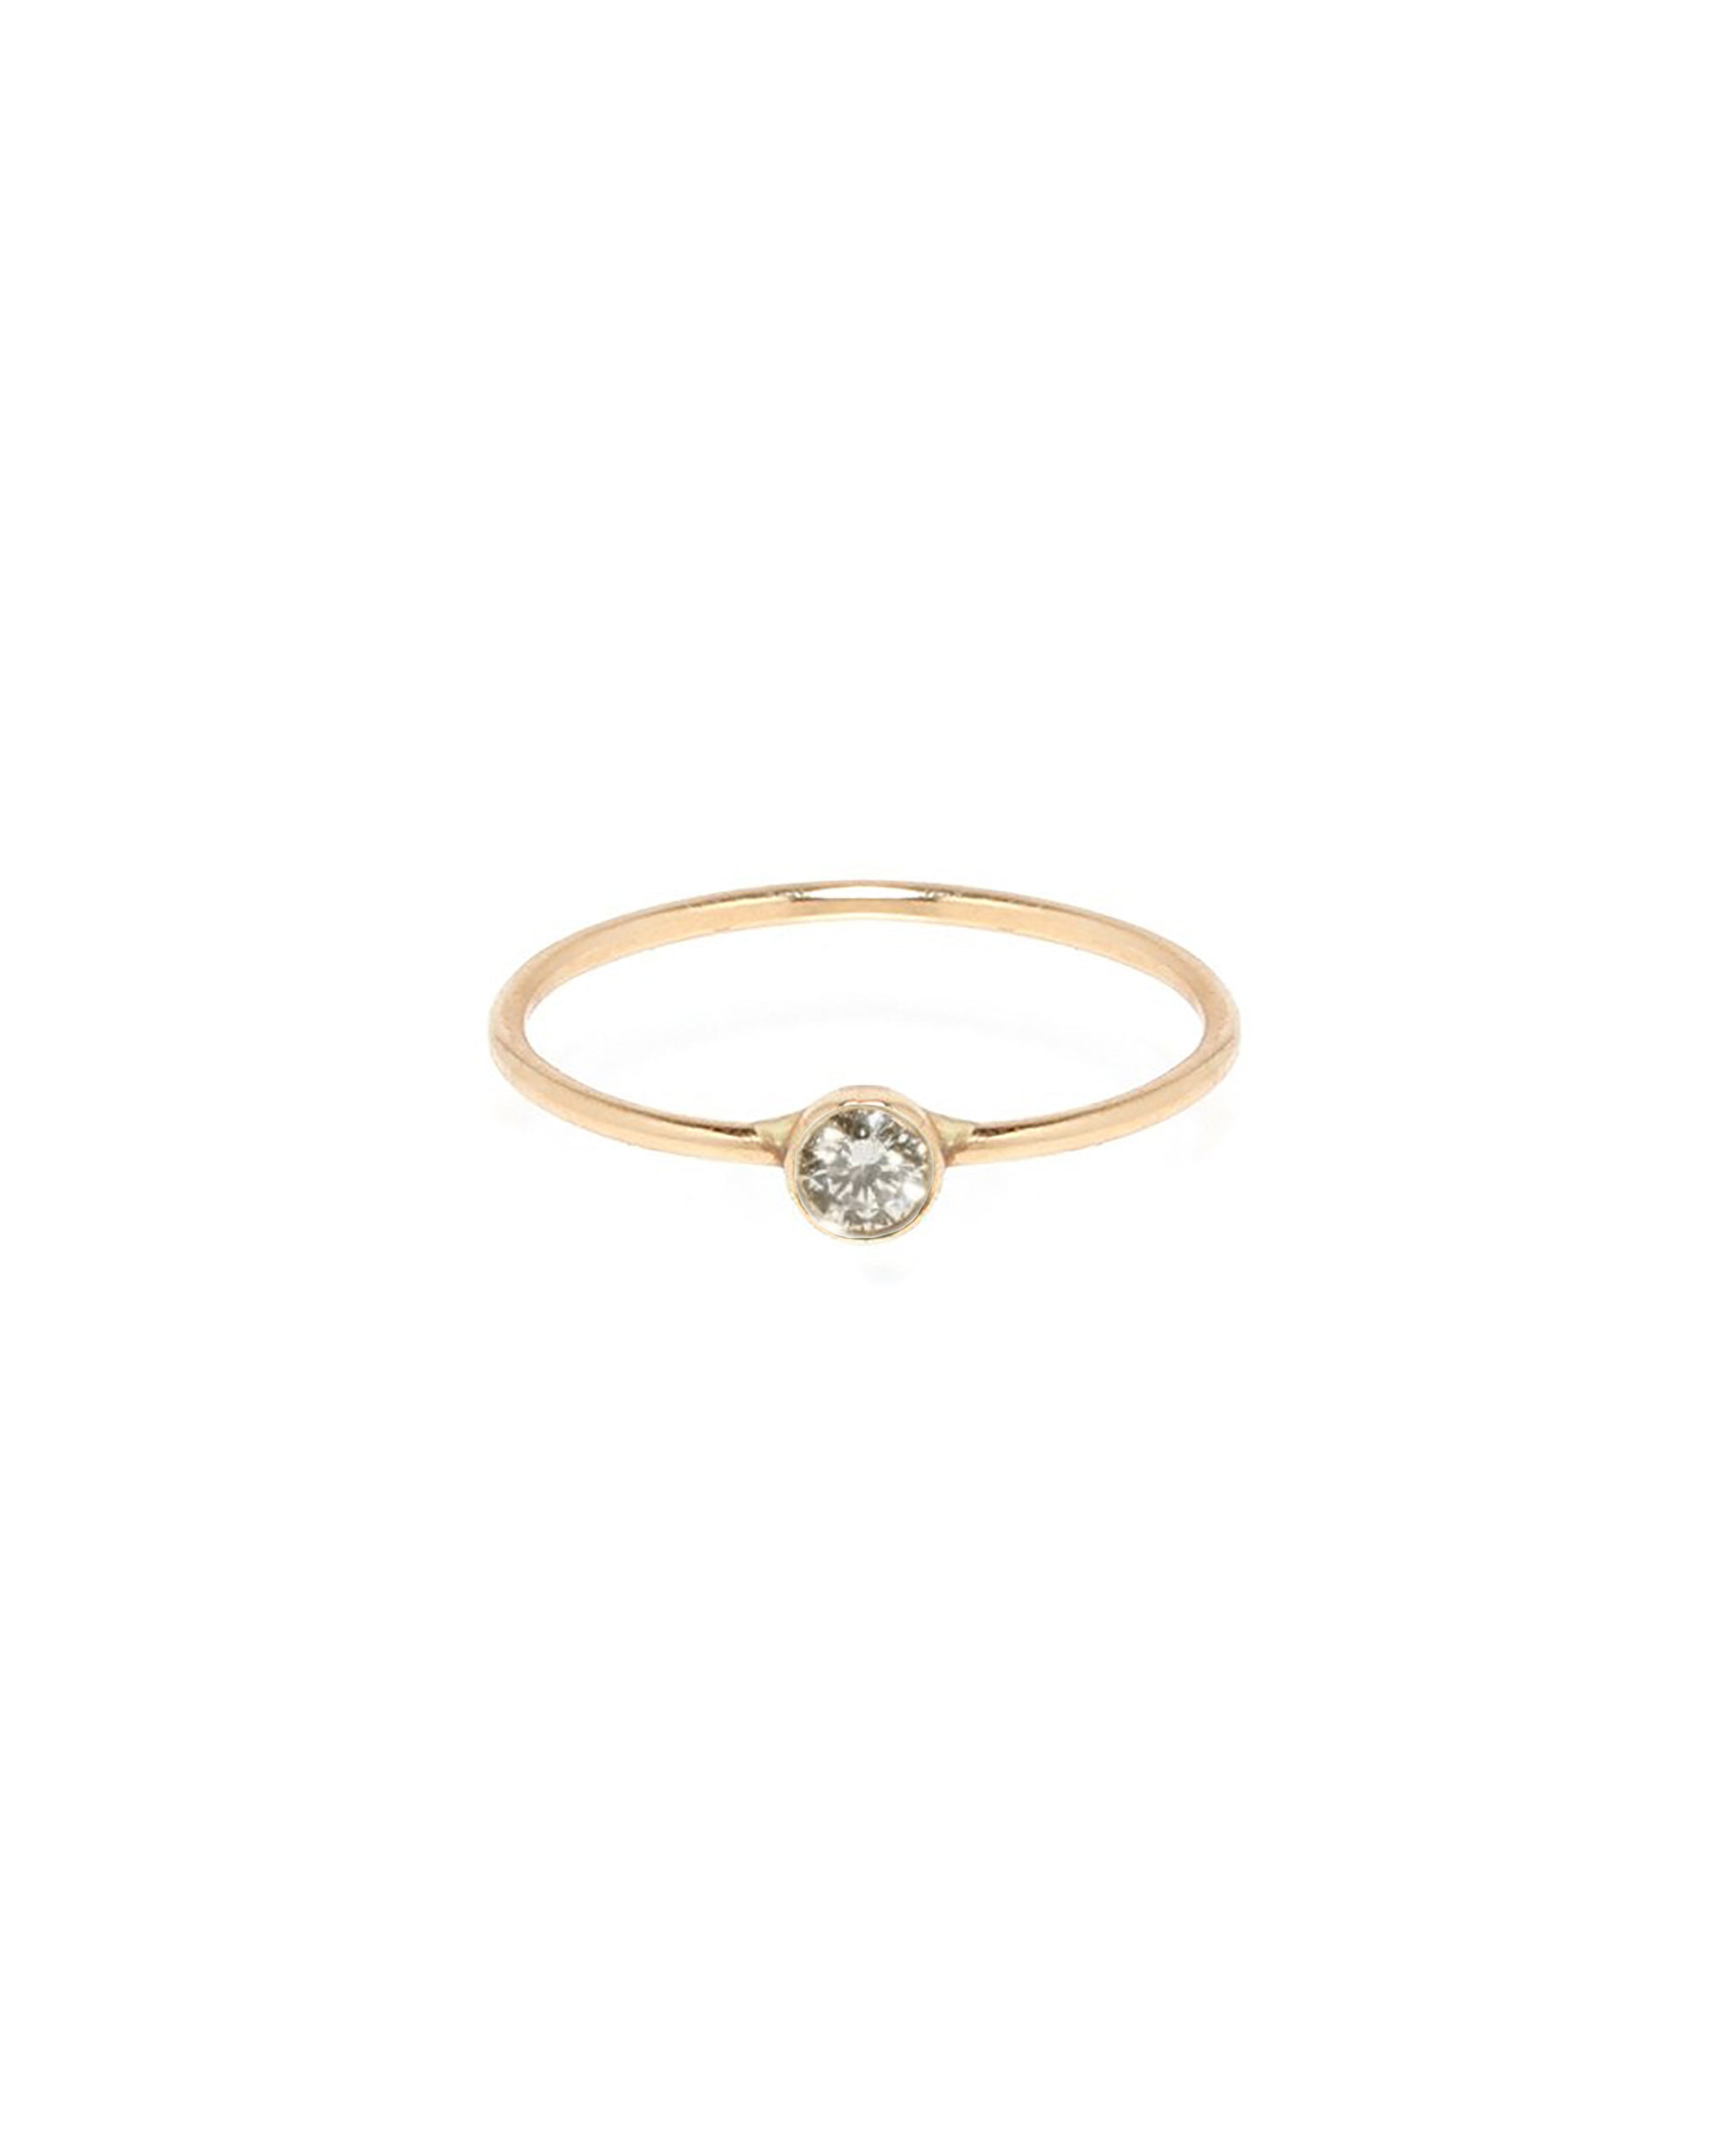 Single Bezel Diamond Stack Ring, 14k Yellow Gold